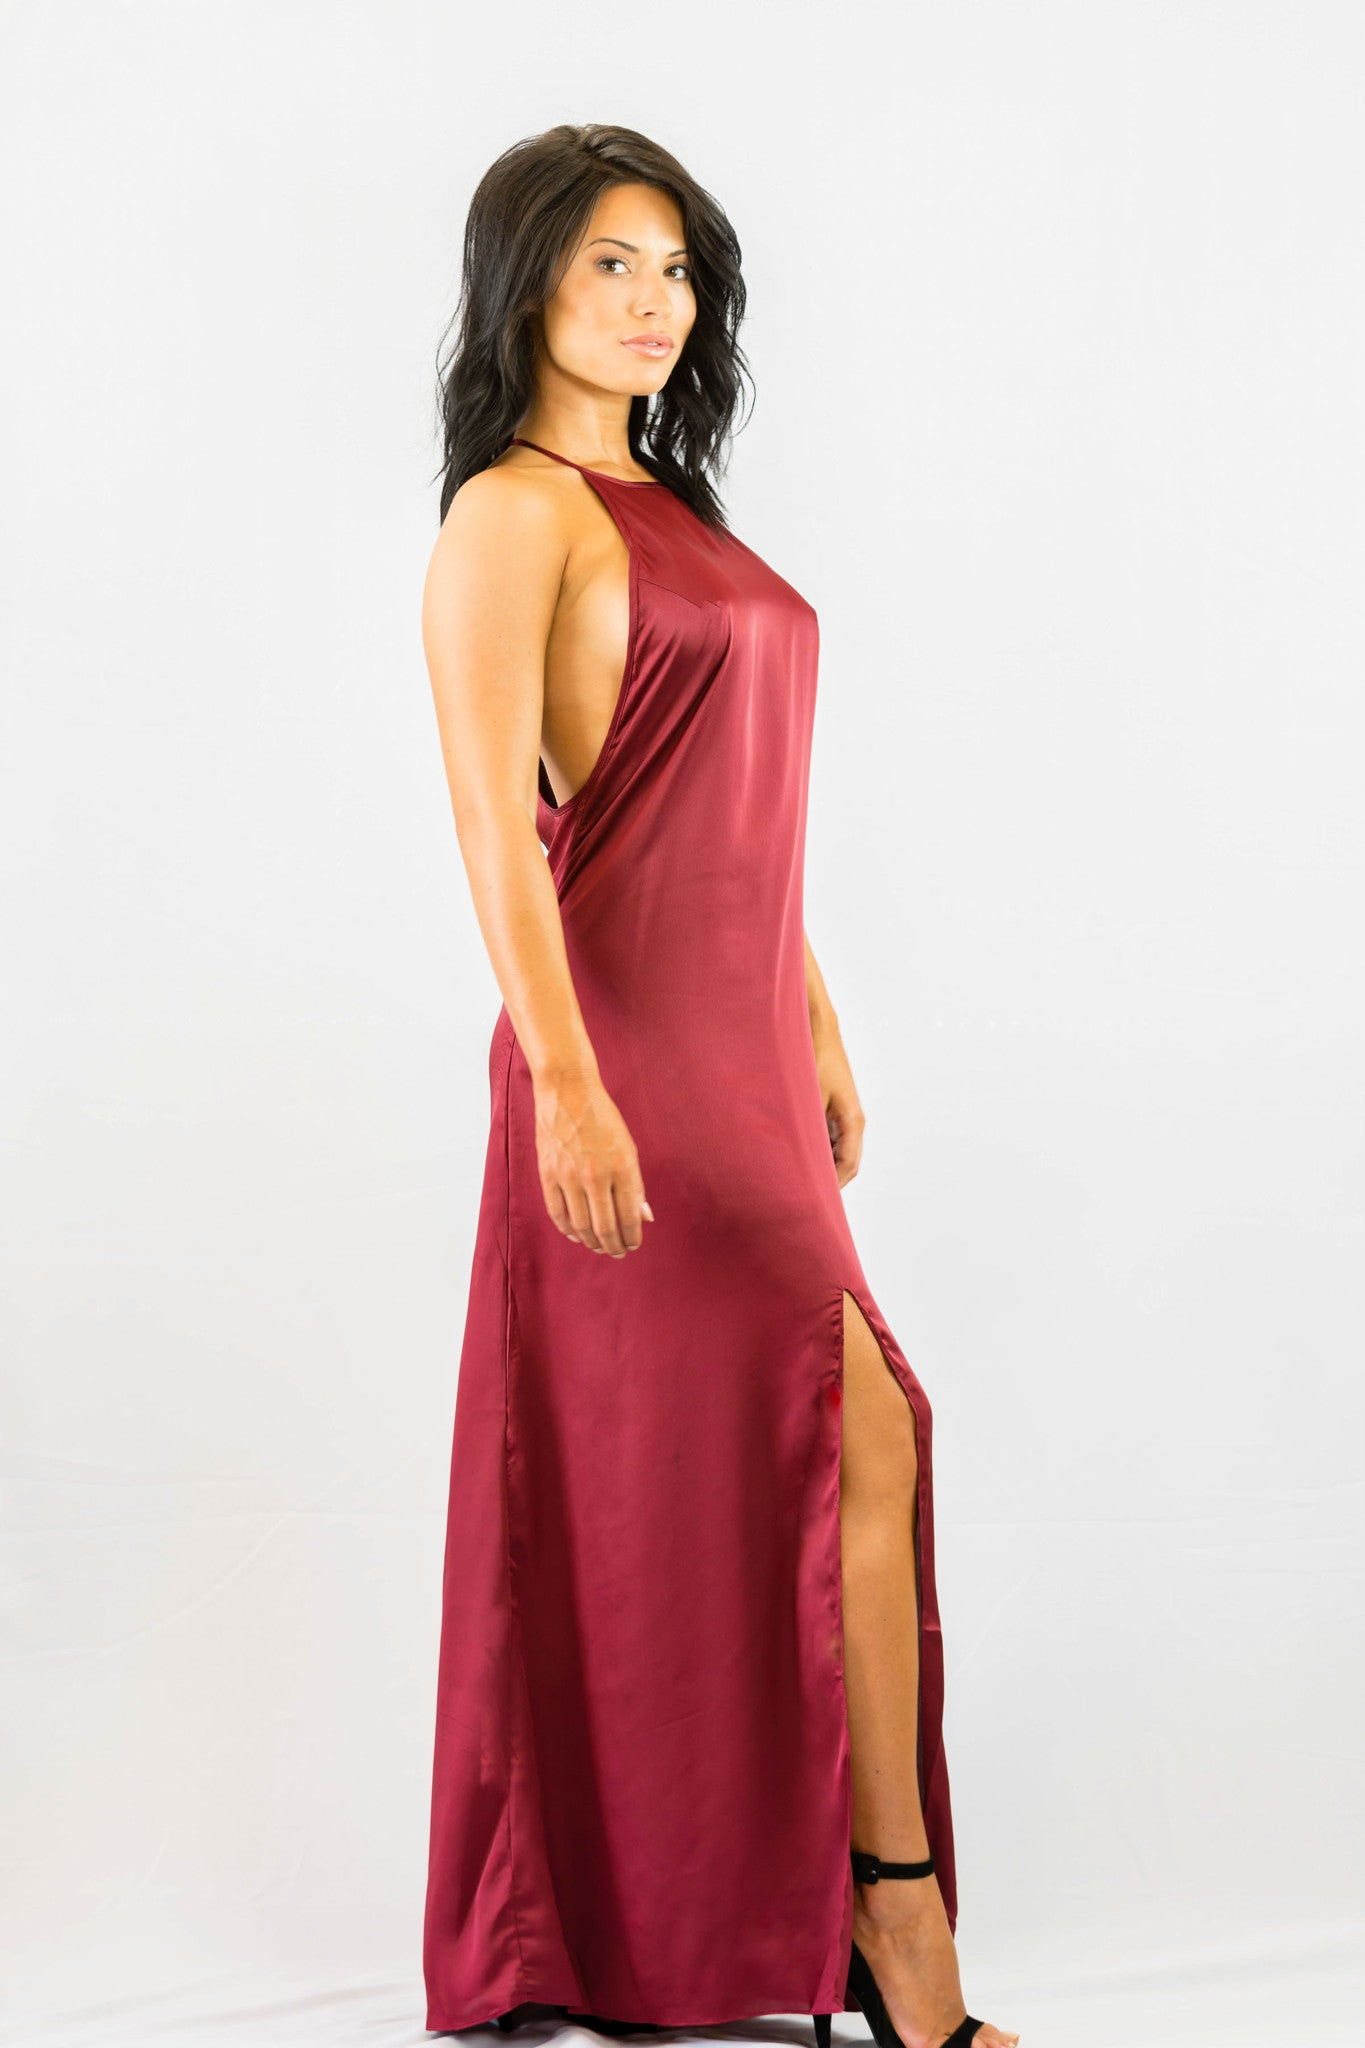 WYLDR Elegance Maxi Dress - Wine - DRESSES - WYLDR - Free Vibrationz - 3